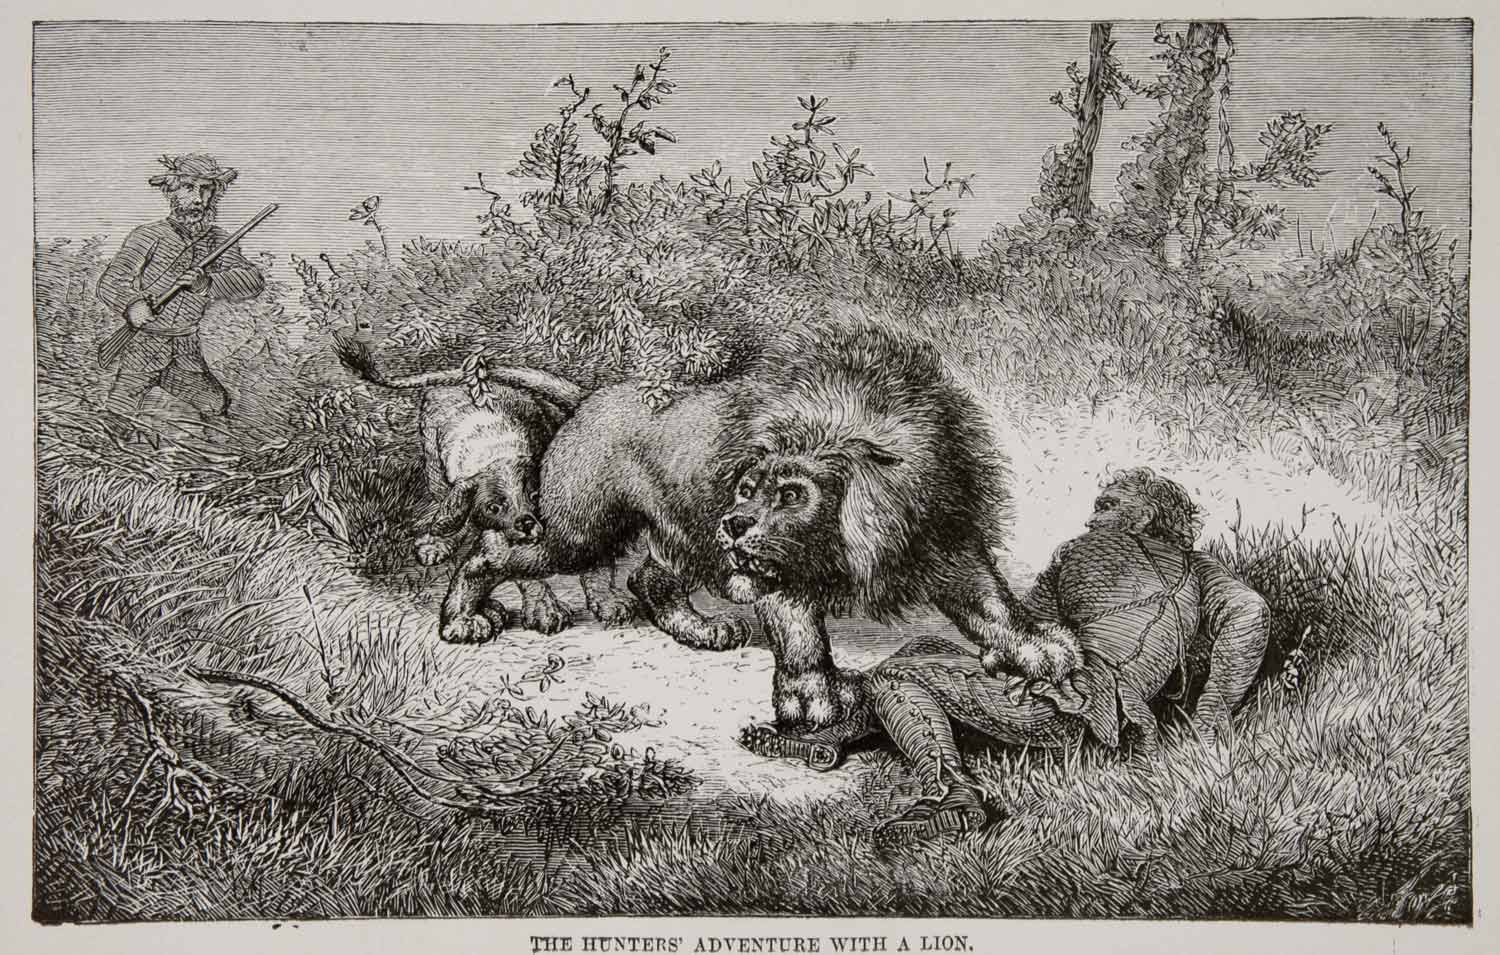 1884 Wood Engraving Africa Hunting Lion Livingstone Rifle Attack Maul XGTA6